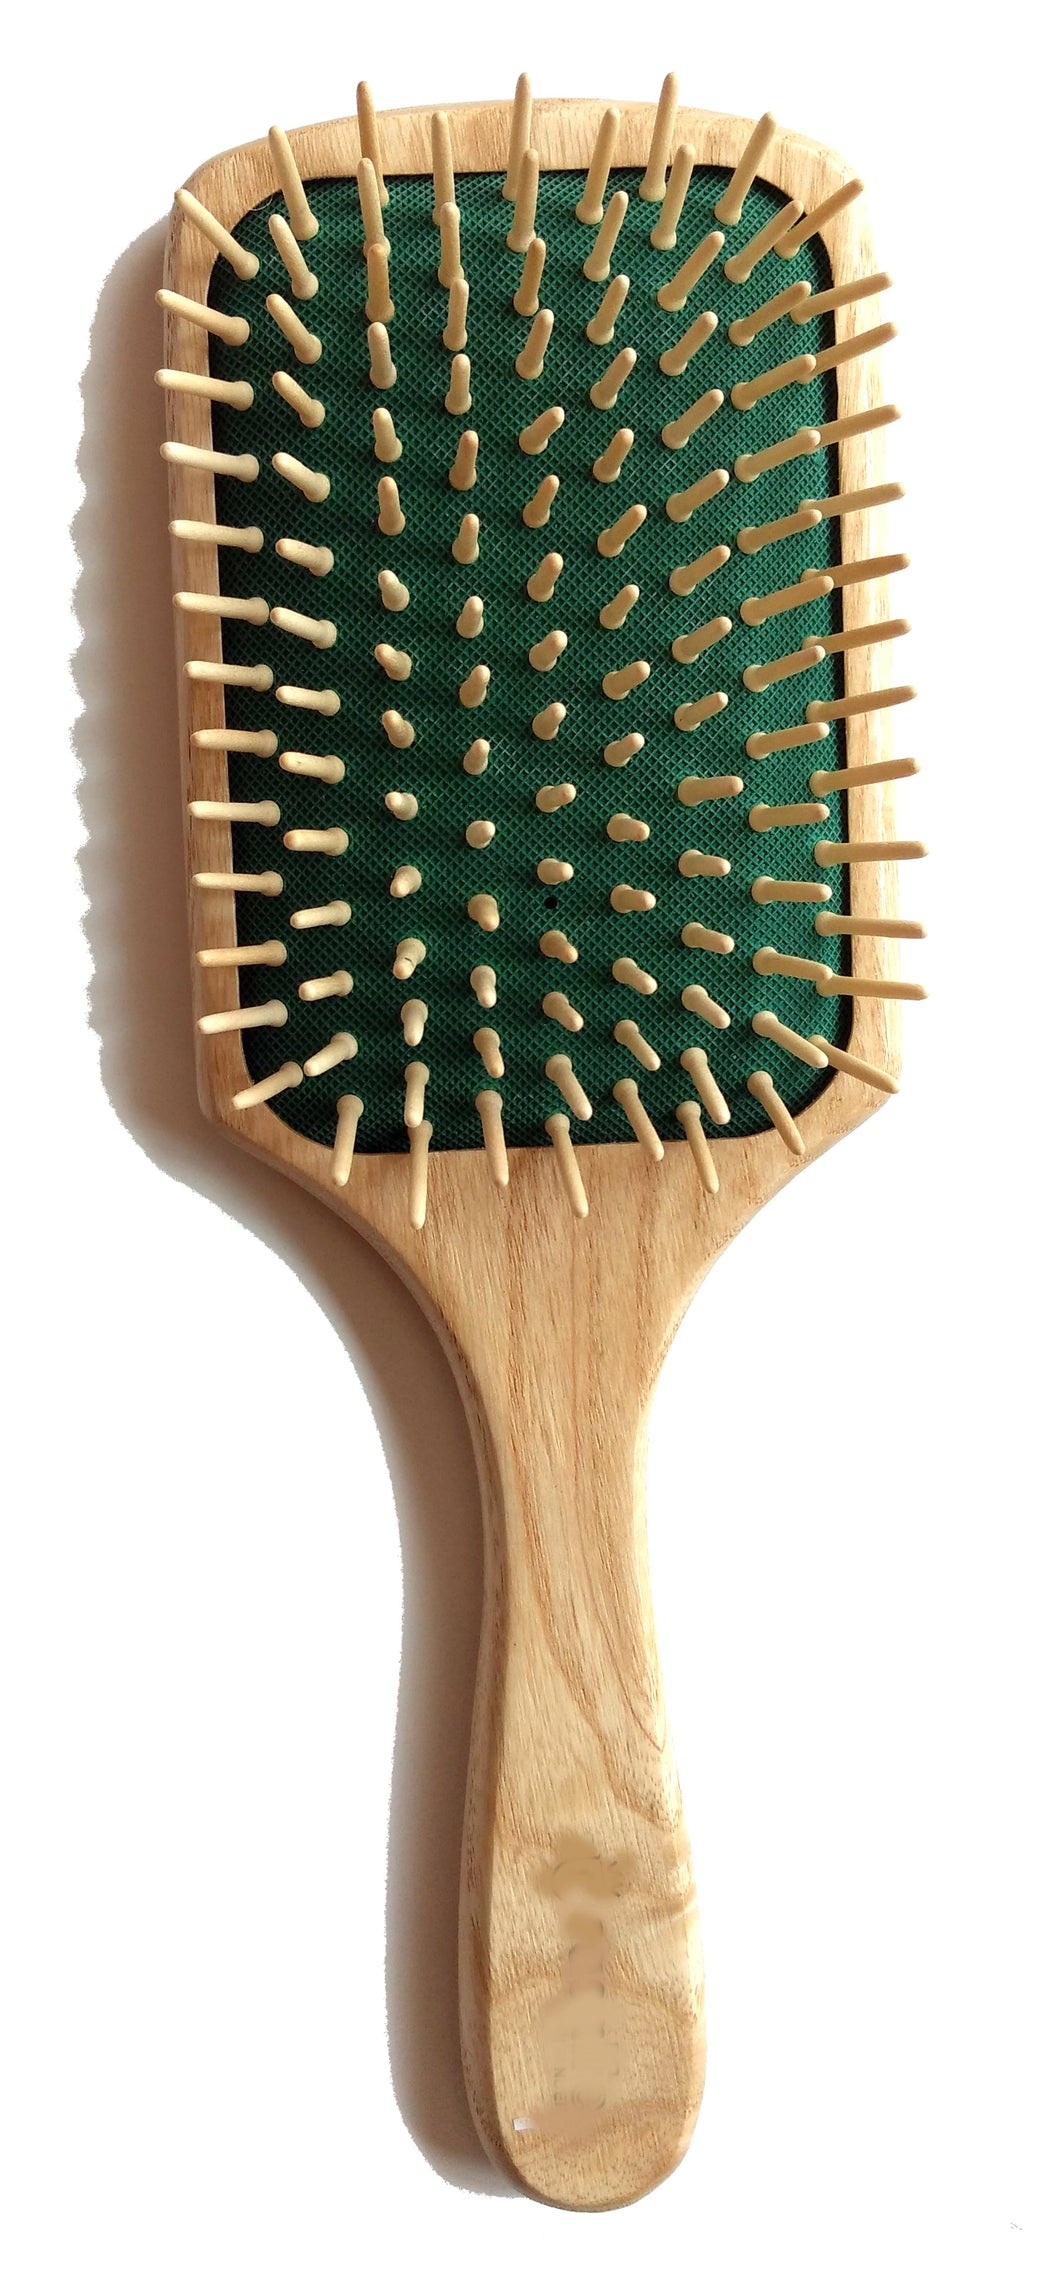 Wooden Hairbrush Paddle - Orethic.com